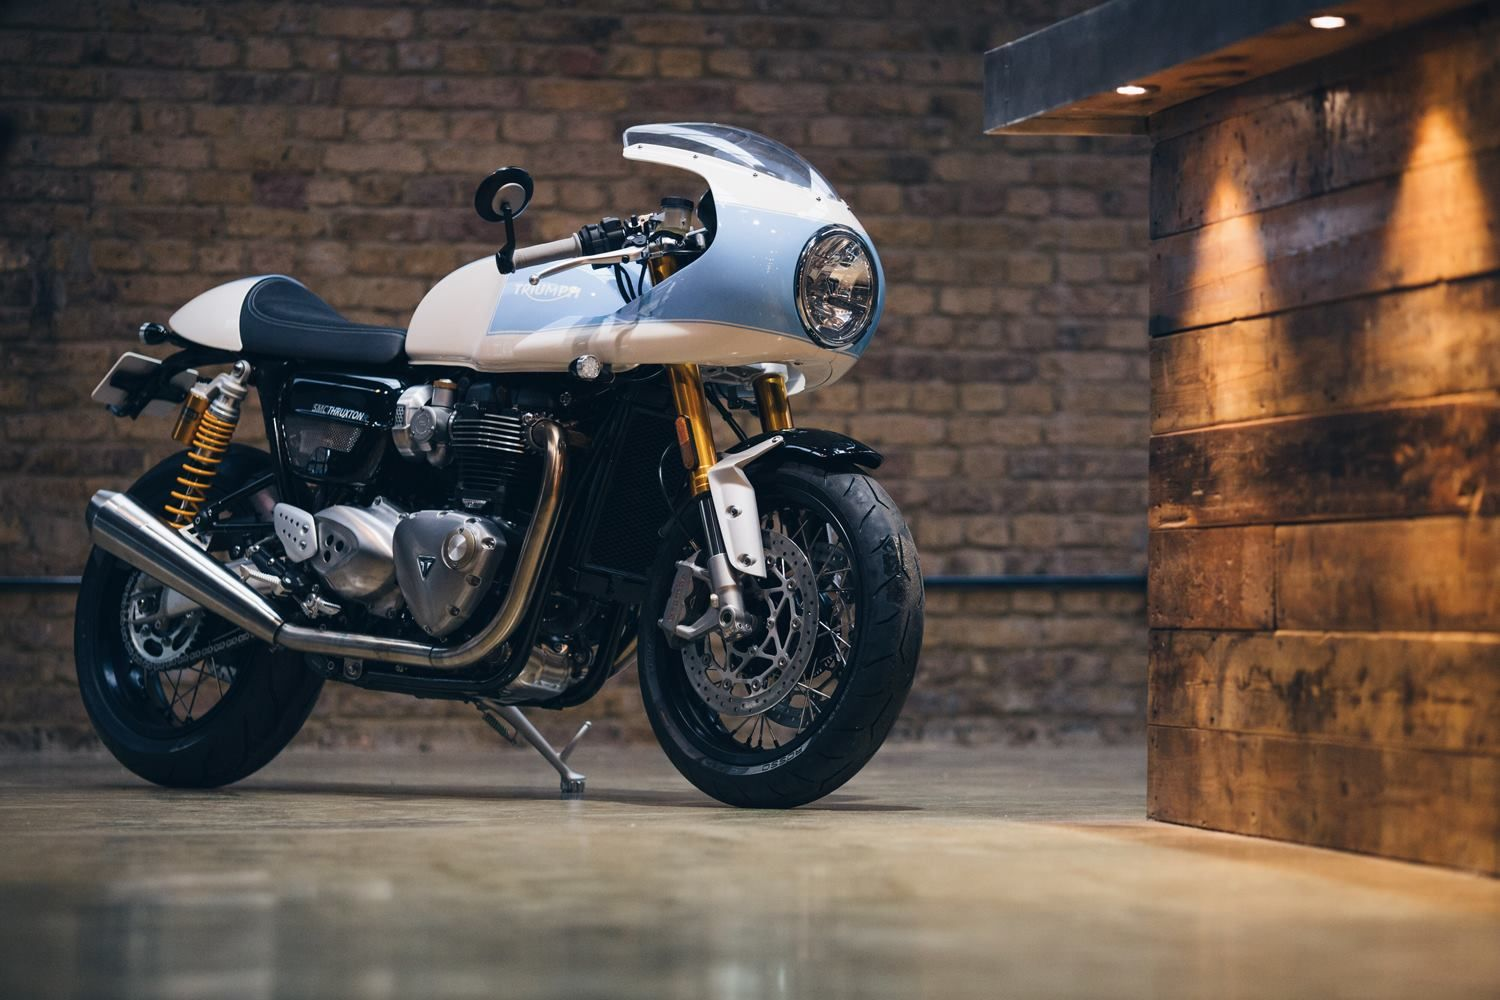 racing caf triumph thruxton r 1200 by standard motorcycle co moto triumph pinterest. Black Bedroom Furniture Sets. Home Design Ideas